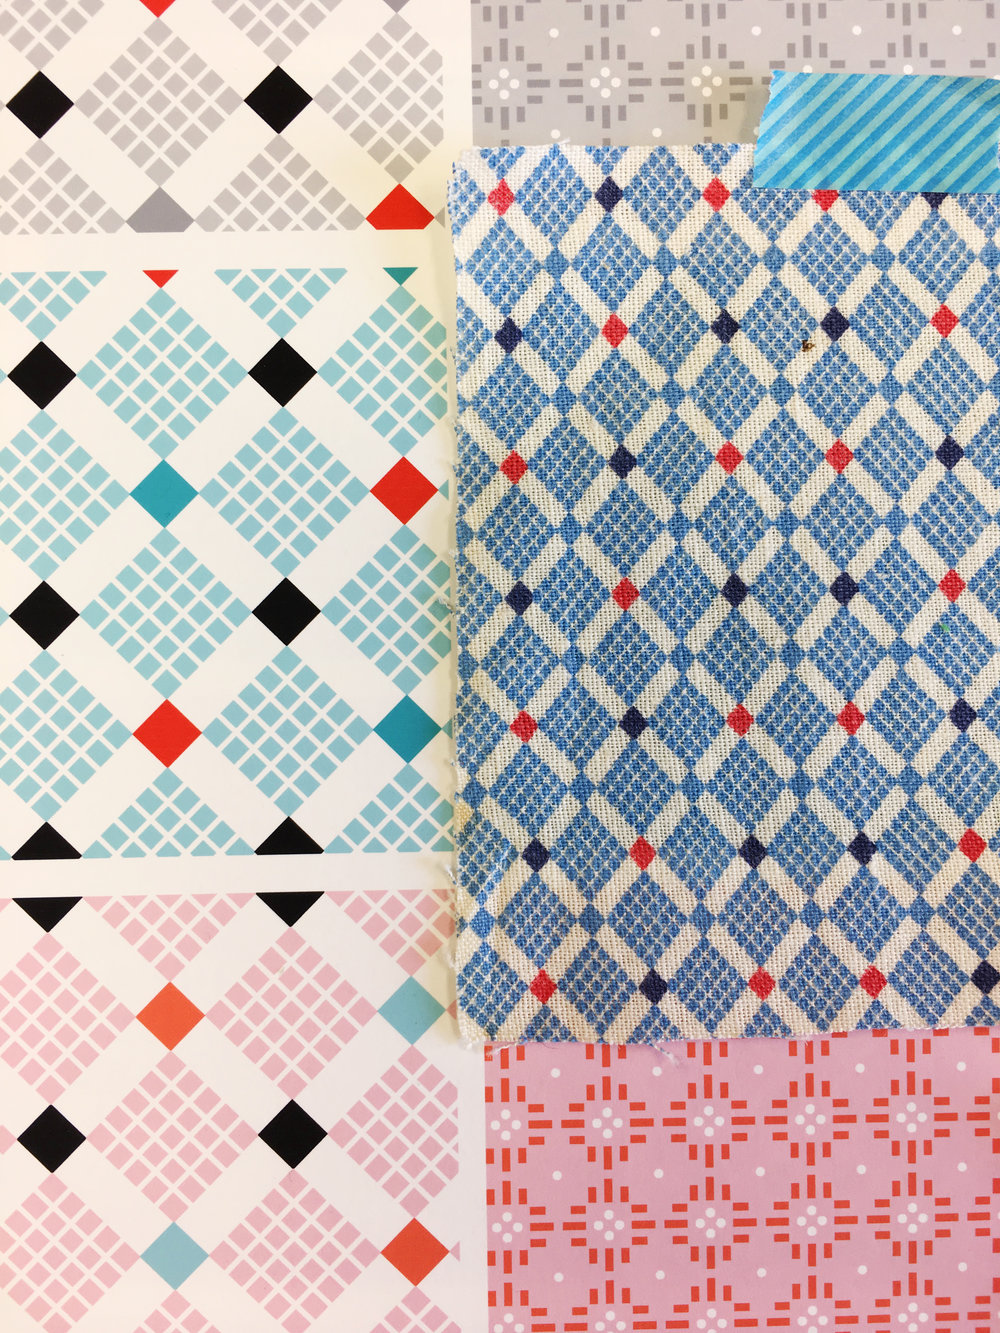 *UPPERCASE-Fabric-Volume2-Paper-Design-Roughs-001.JPG